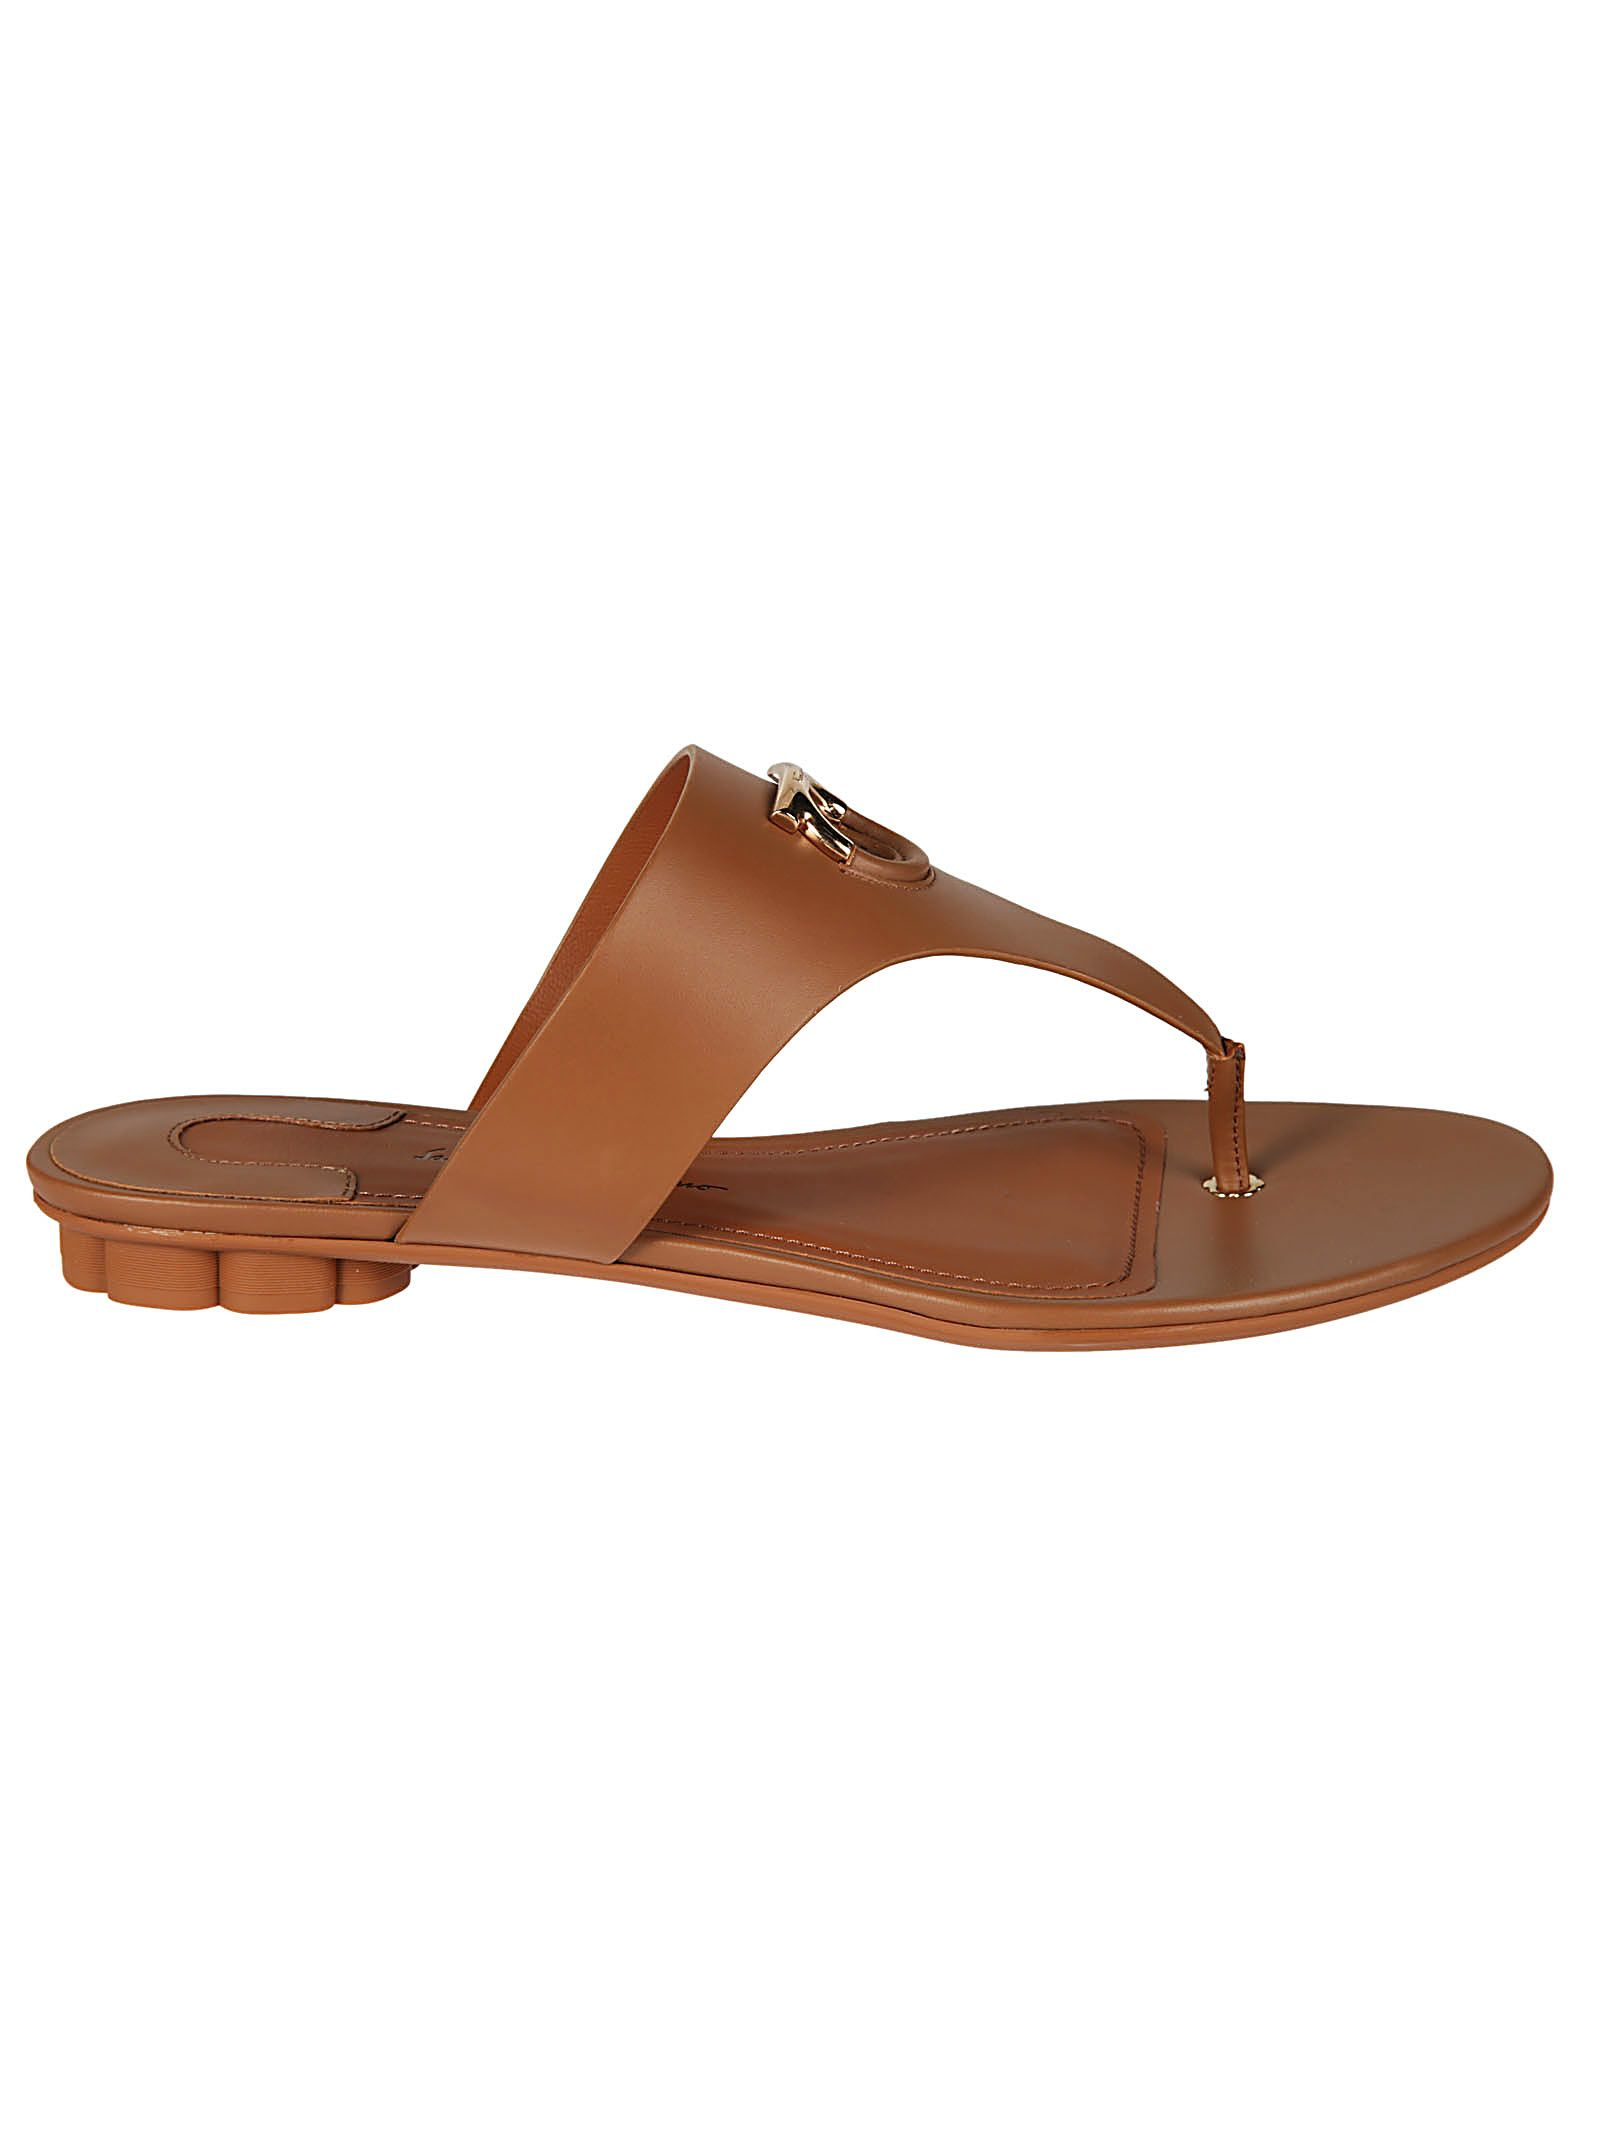 Online Cheapest  Quality From China Cheap Salvatore Ferragamo Nfola leather sandals Genuine Cheap Online Discount New Styles Mq6BWZypc